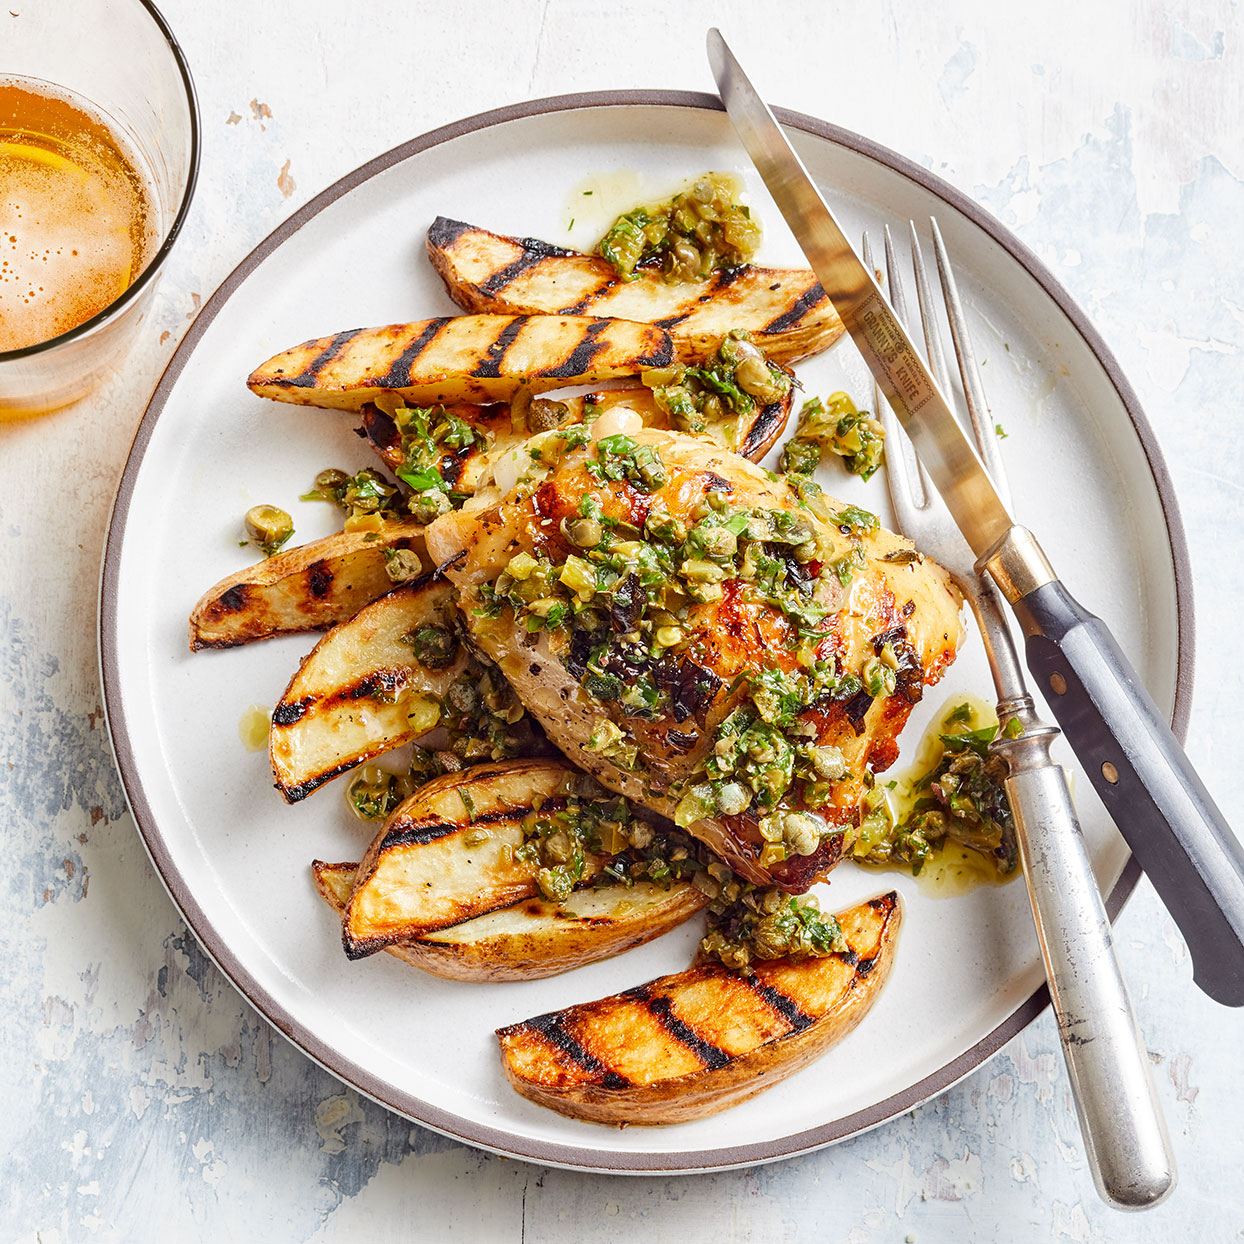 We combine fresh herbs, capers, lemon juice and olive oil along with the juices collected from the chicken as it rests to make a simple sauce that livens up this take on poulet frites, or chicken and fries. Source: EatingWell Magazine, May 2020